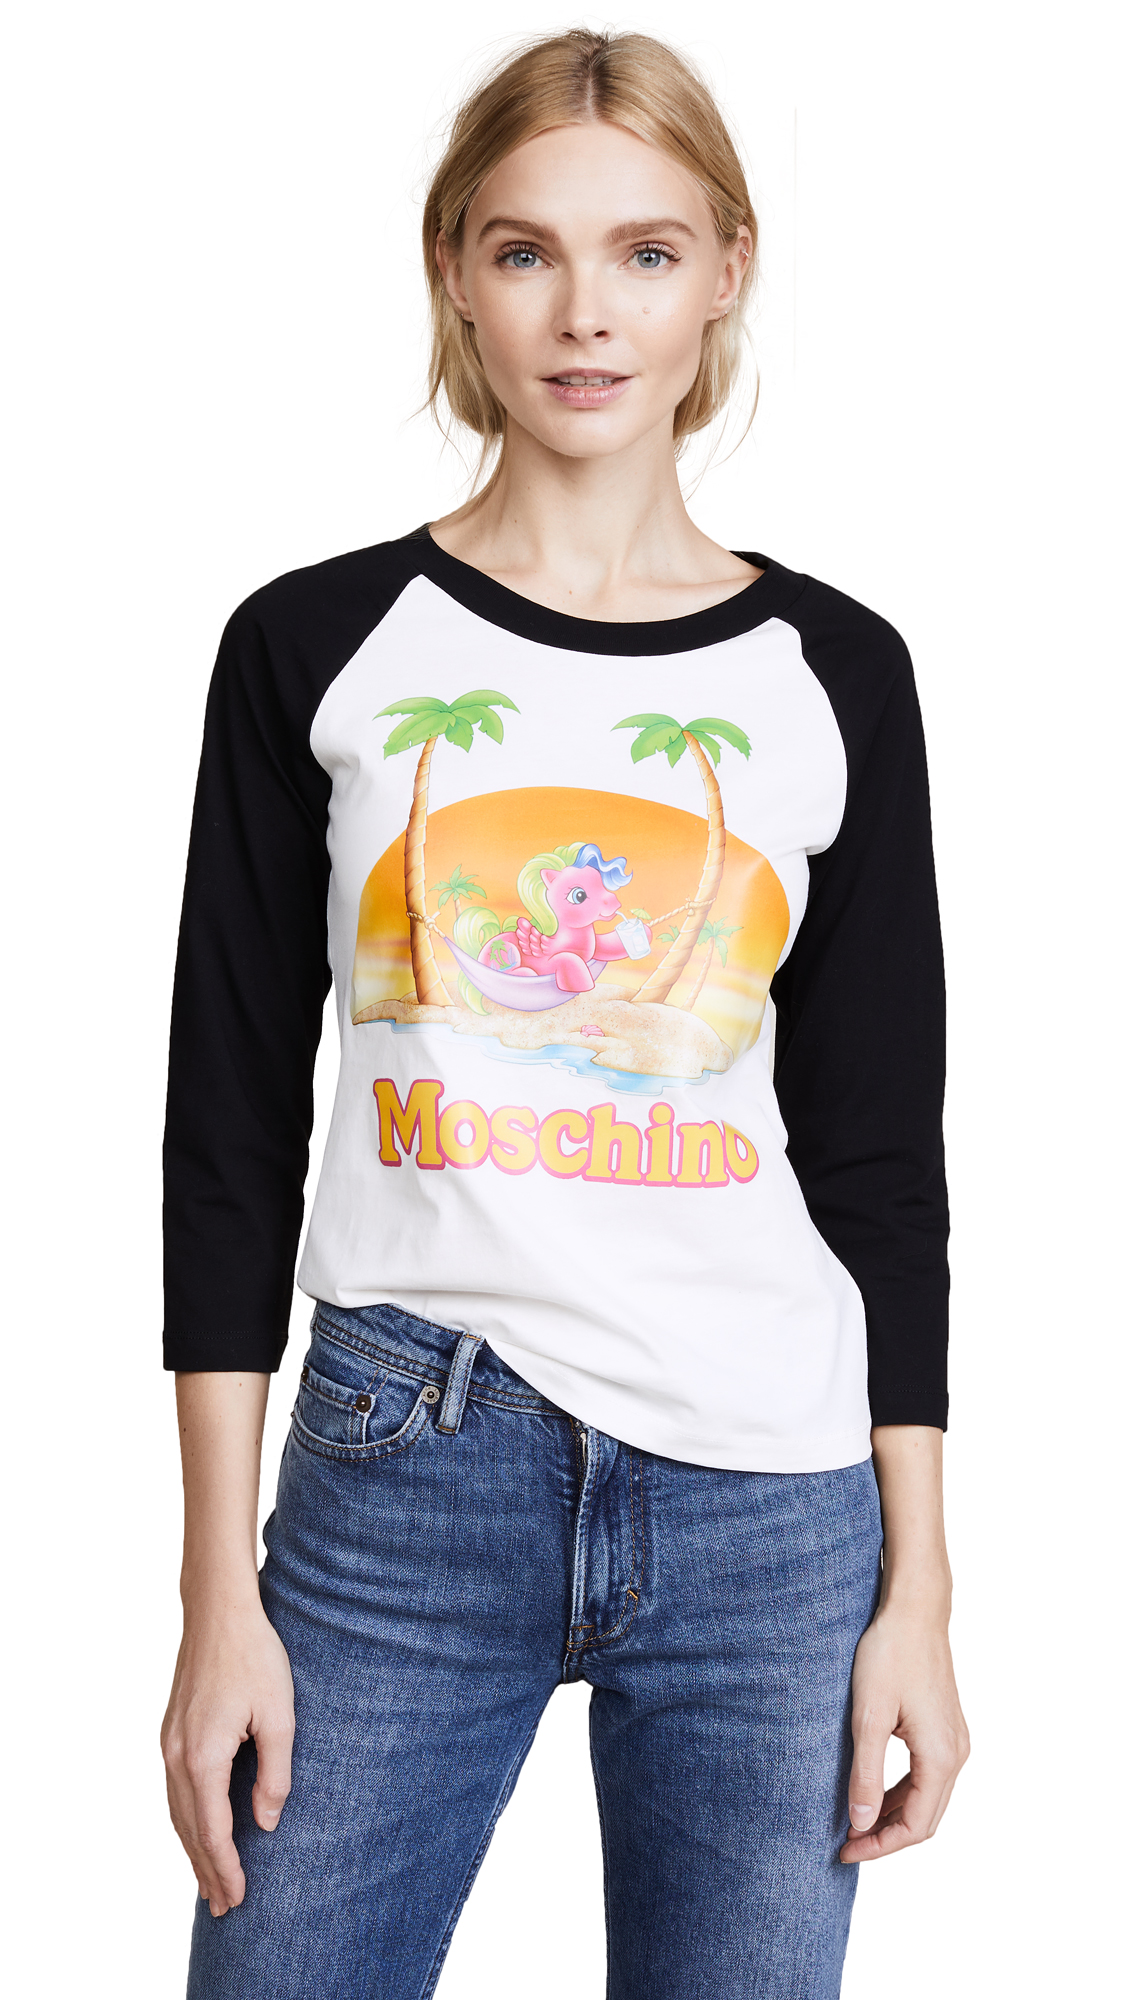 Moschino My Little Pony Beach Baseball Tee - Black/White